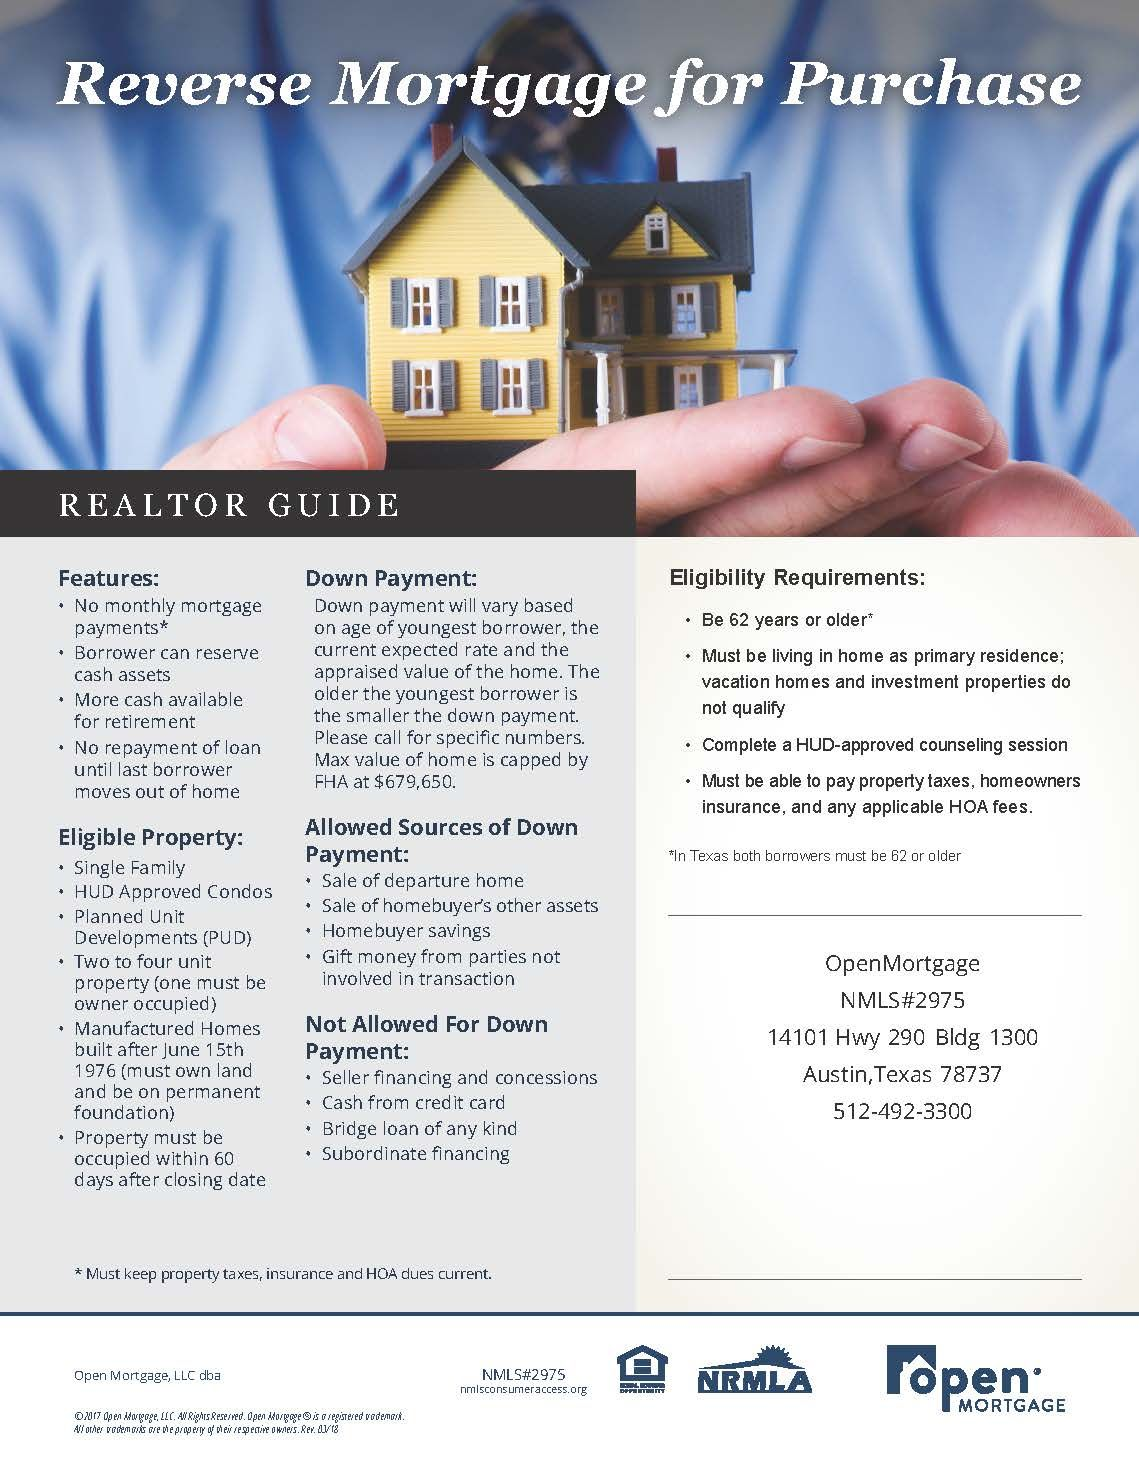 We are willing to work with any realtors ready to get into ...